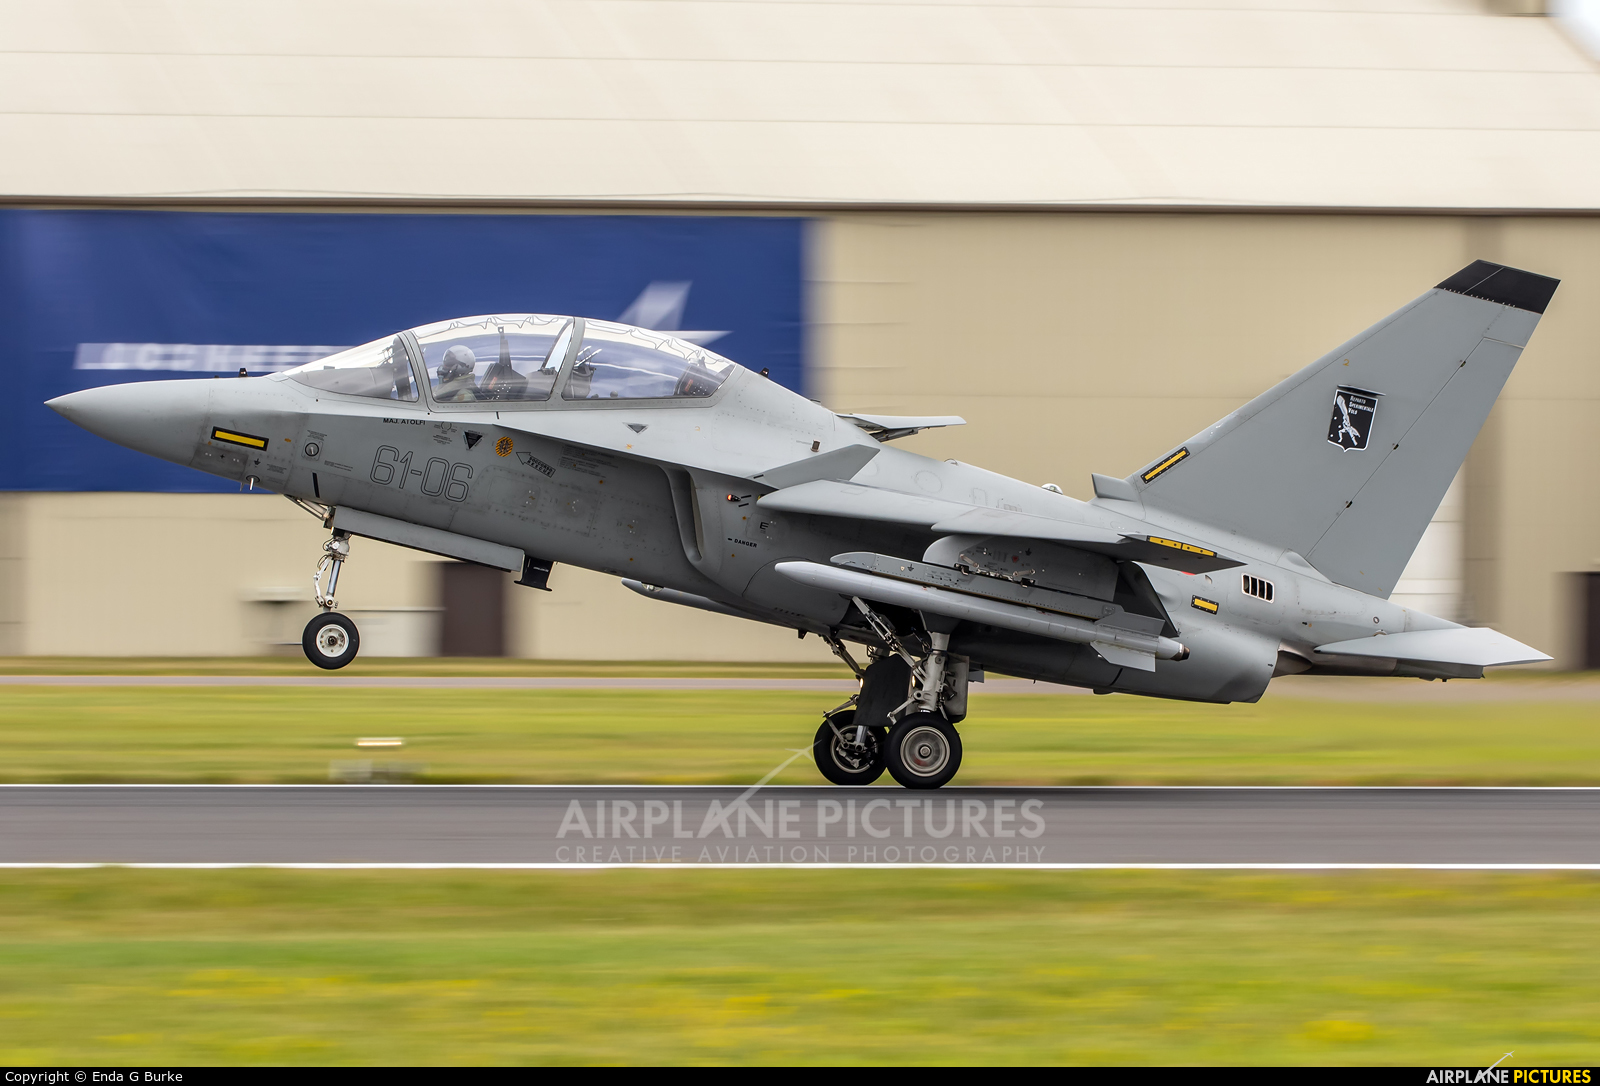 Italy - Air Force MM55213 aircraft at Fairford